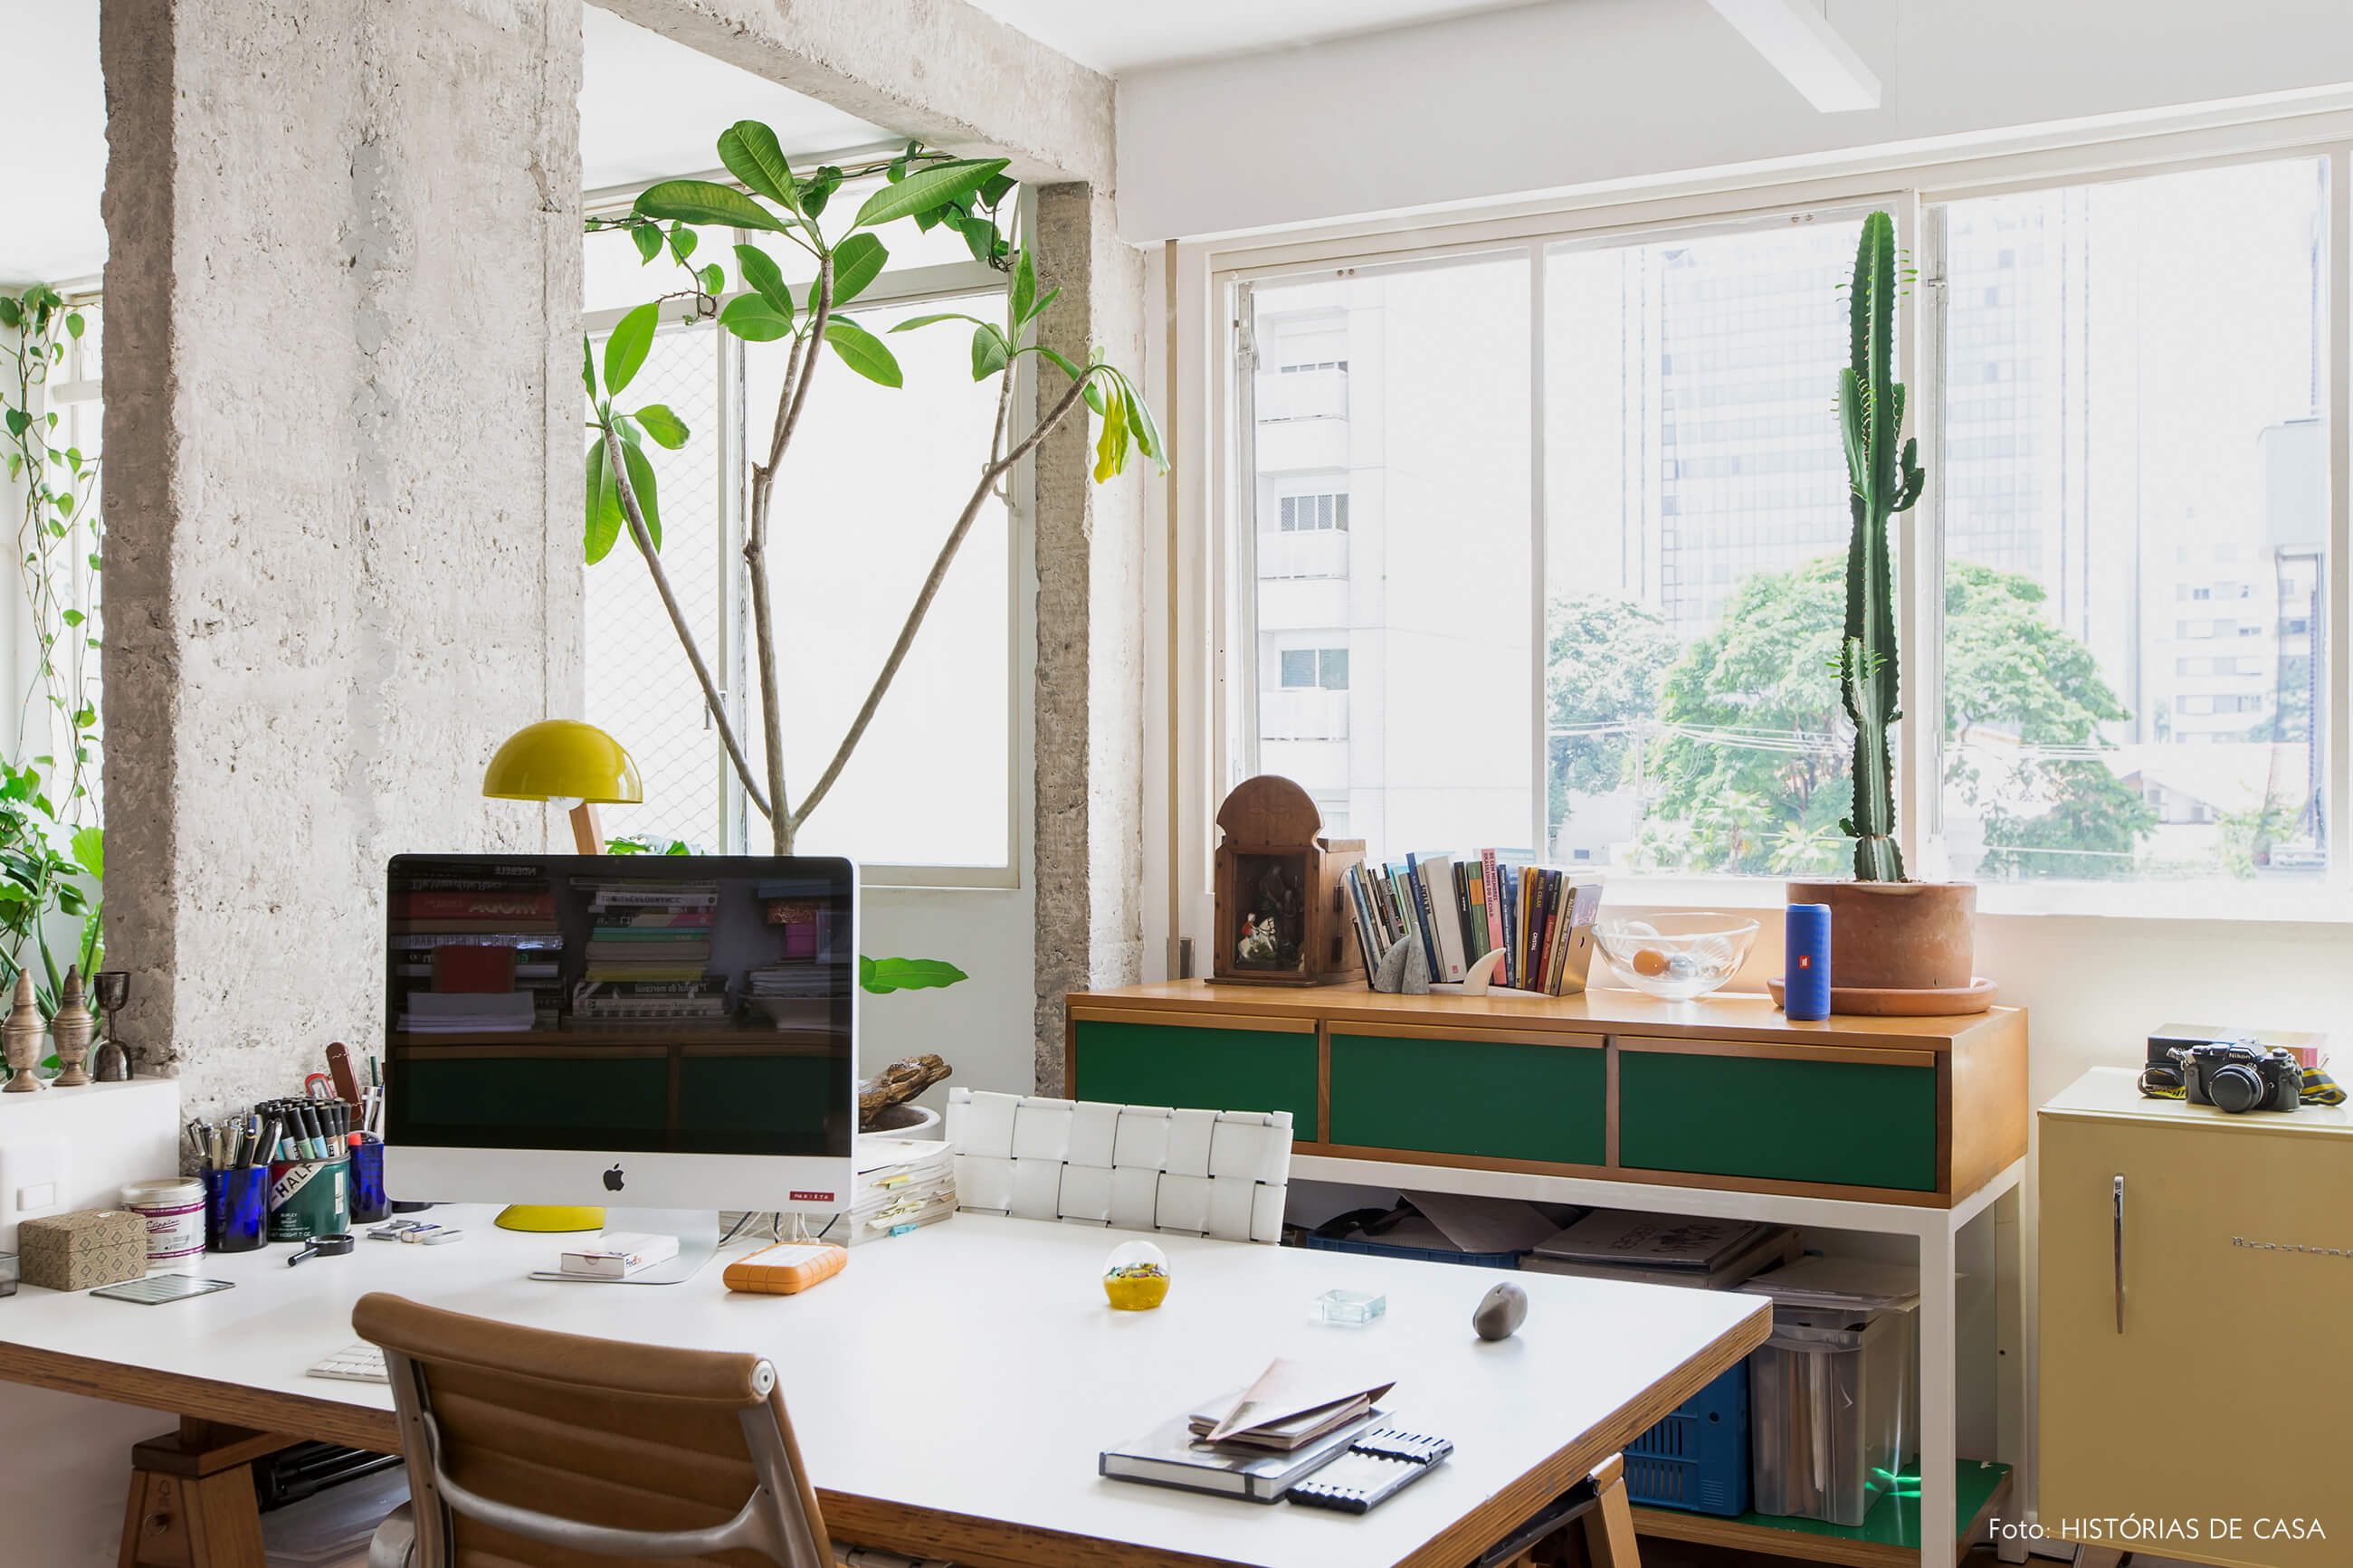 Home office com móvel de formica colorida e muitas plantas